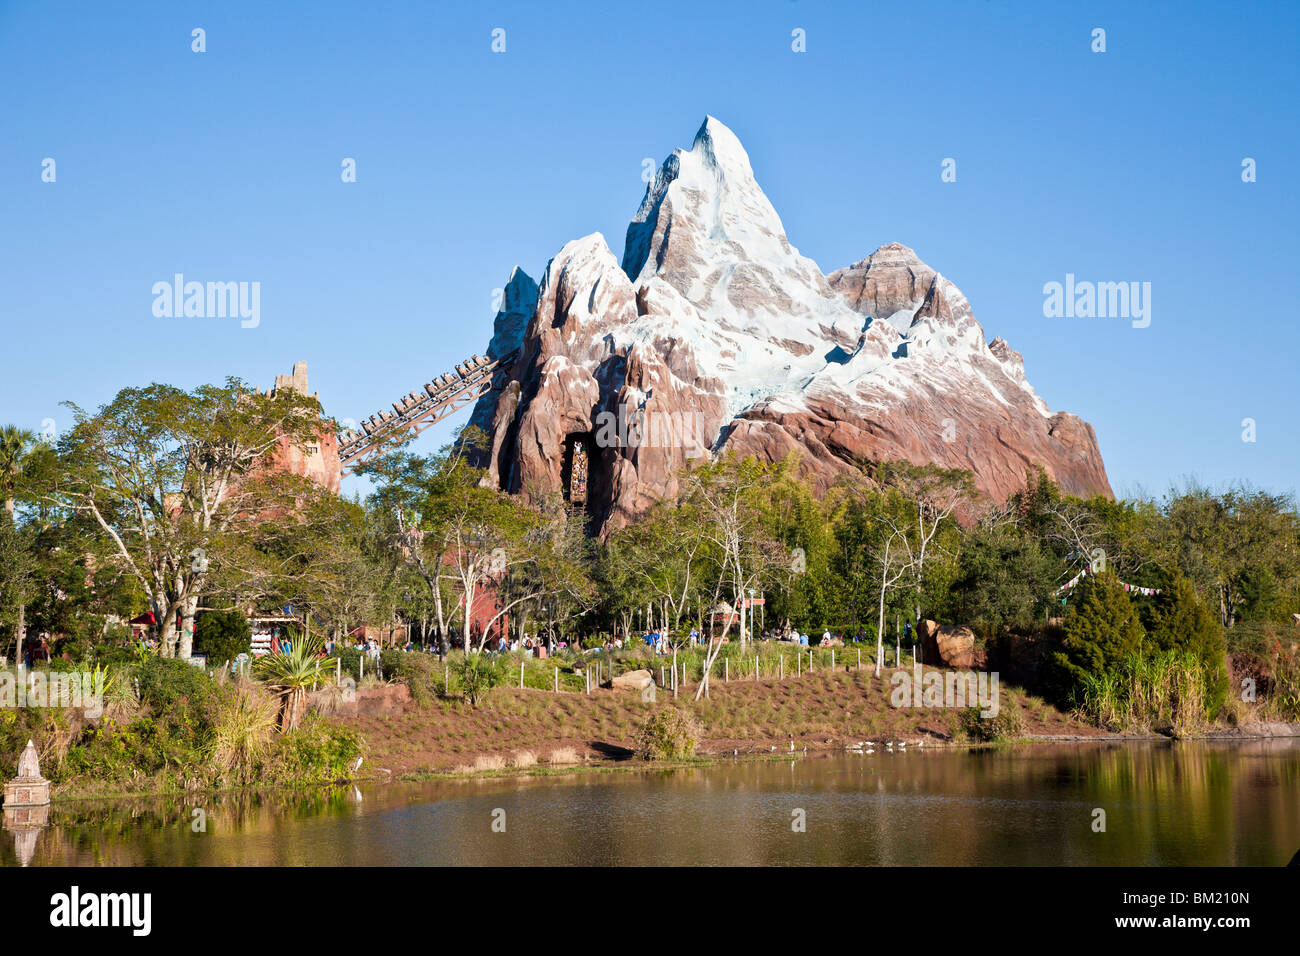 Expedition Everest Roller Coaster Cars Entering Mountain Tunnel At